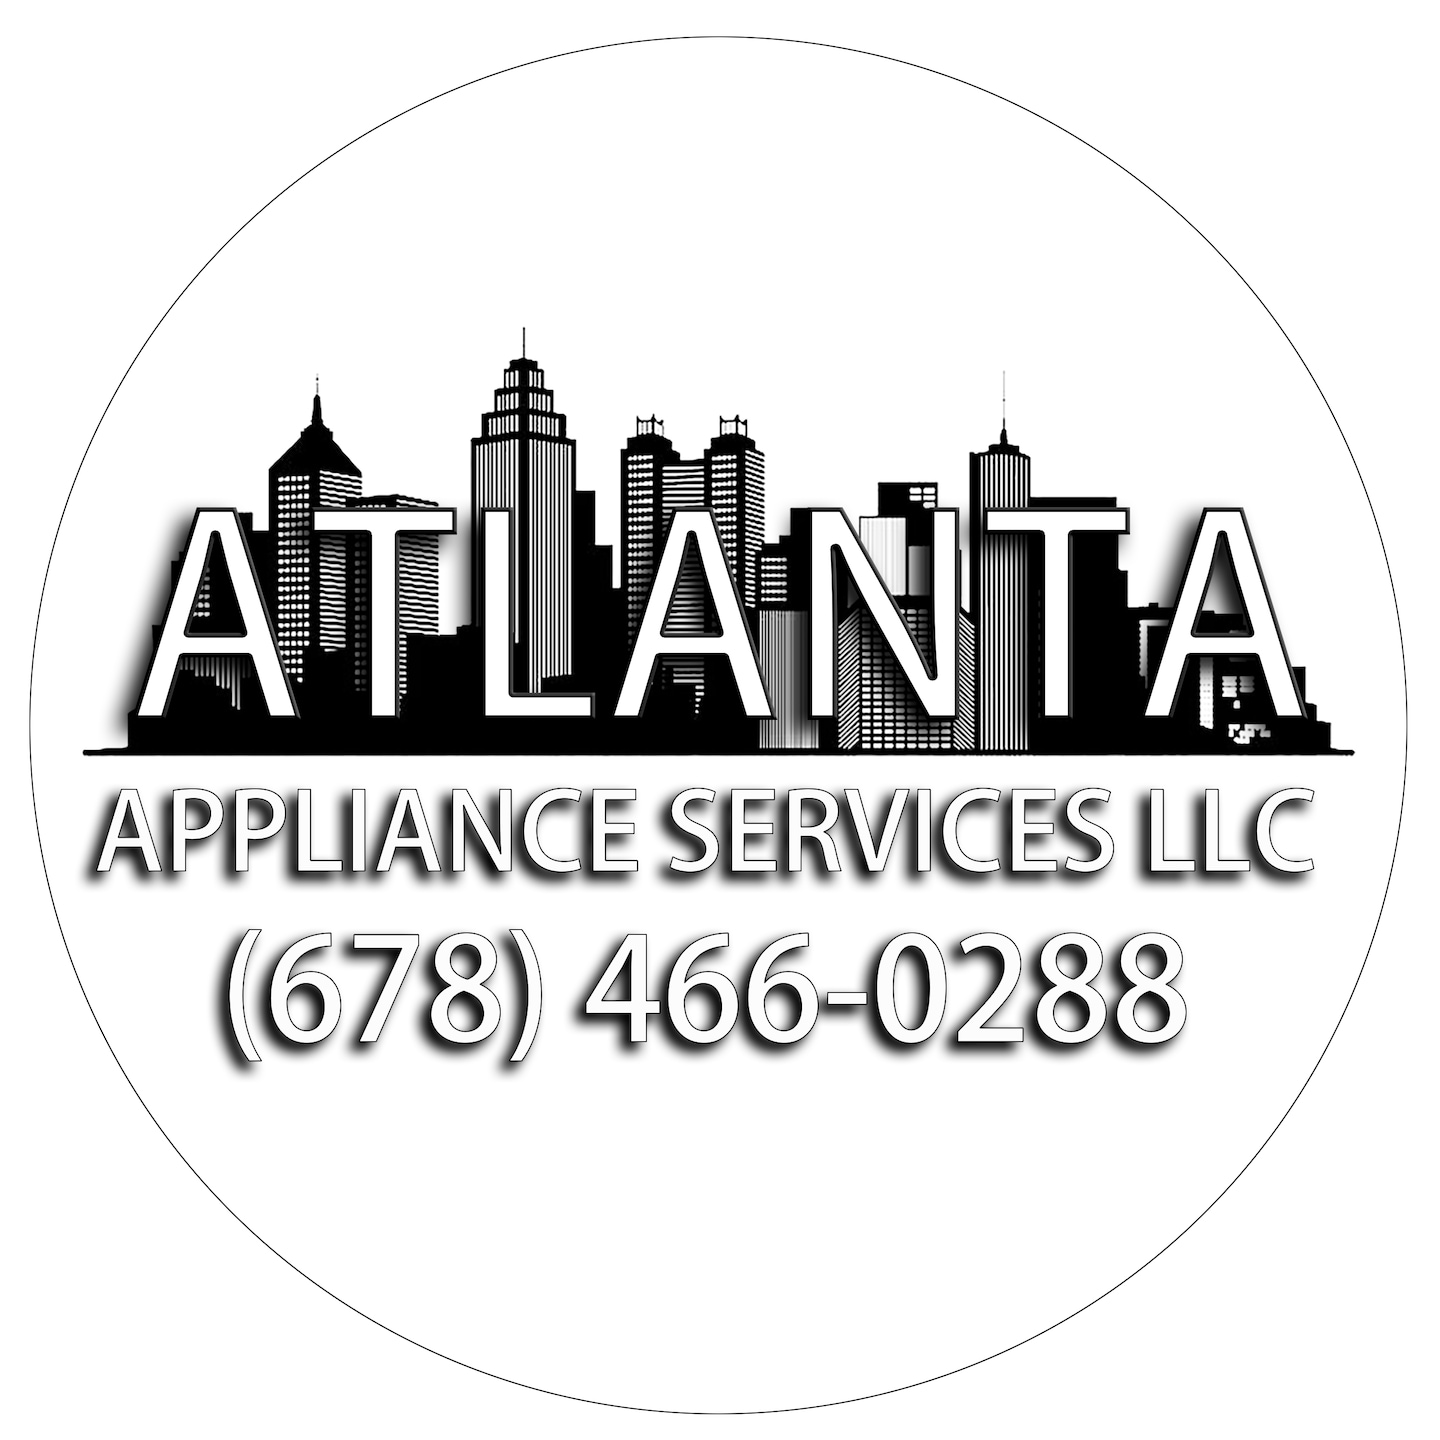 Atlanta Appliance Services LLC